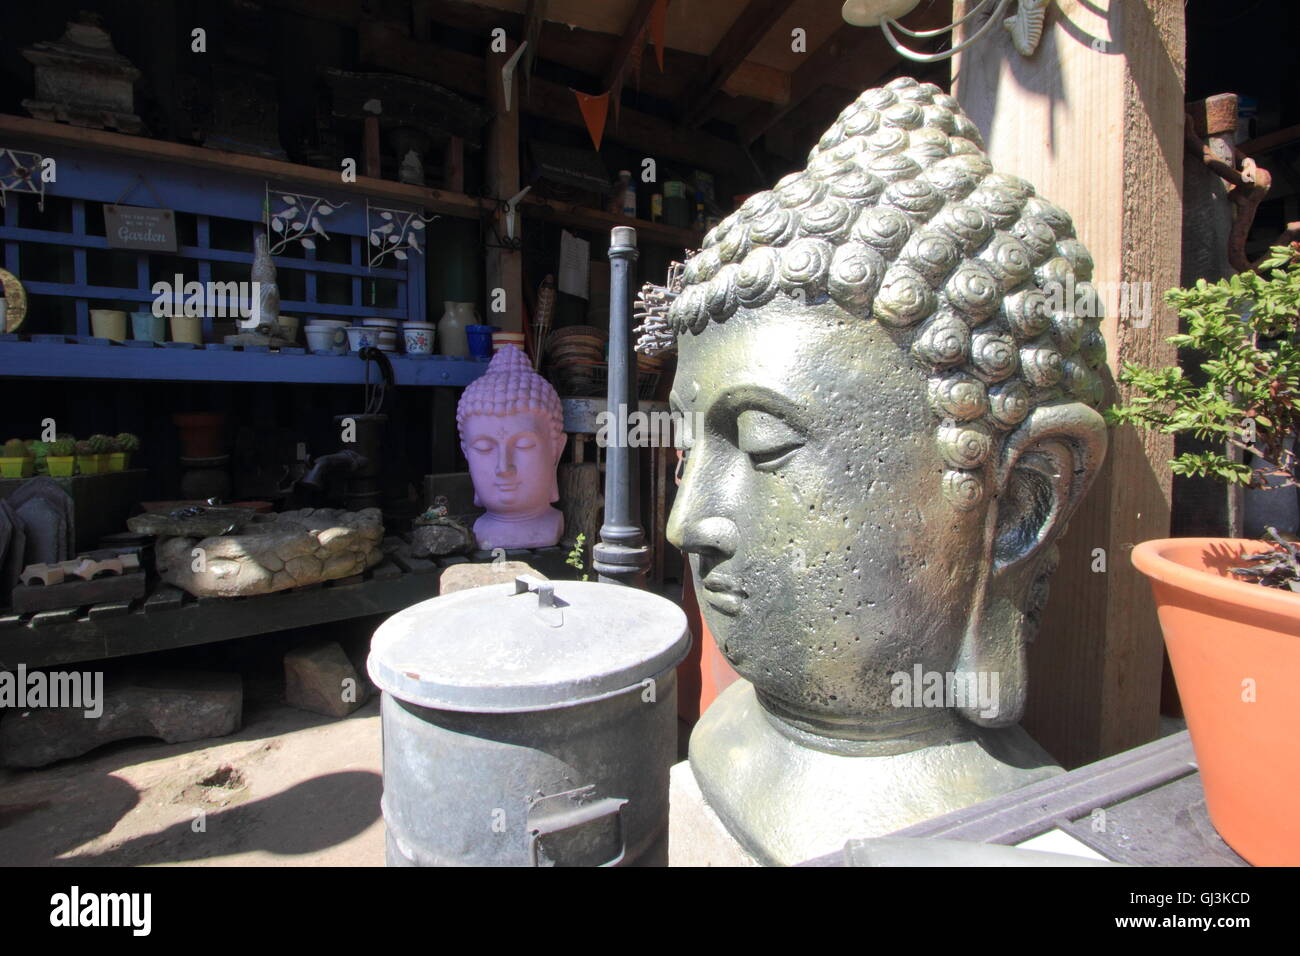 Buddha garden statuary for sale inside Swifties reclamation yard in the antiques quarter of the City of Sheffield, - Stock Image